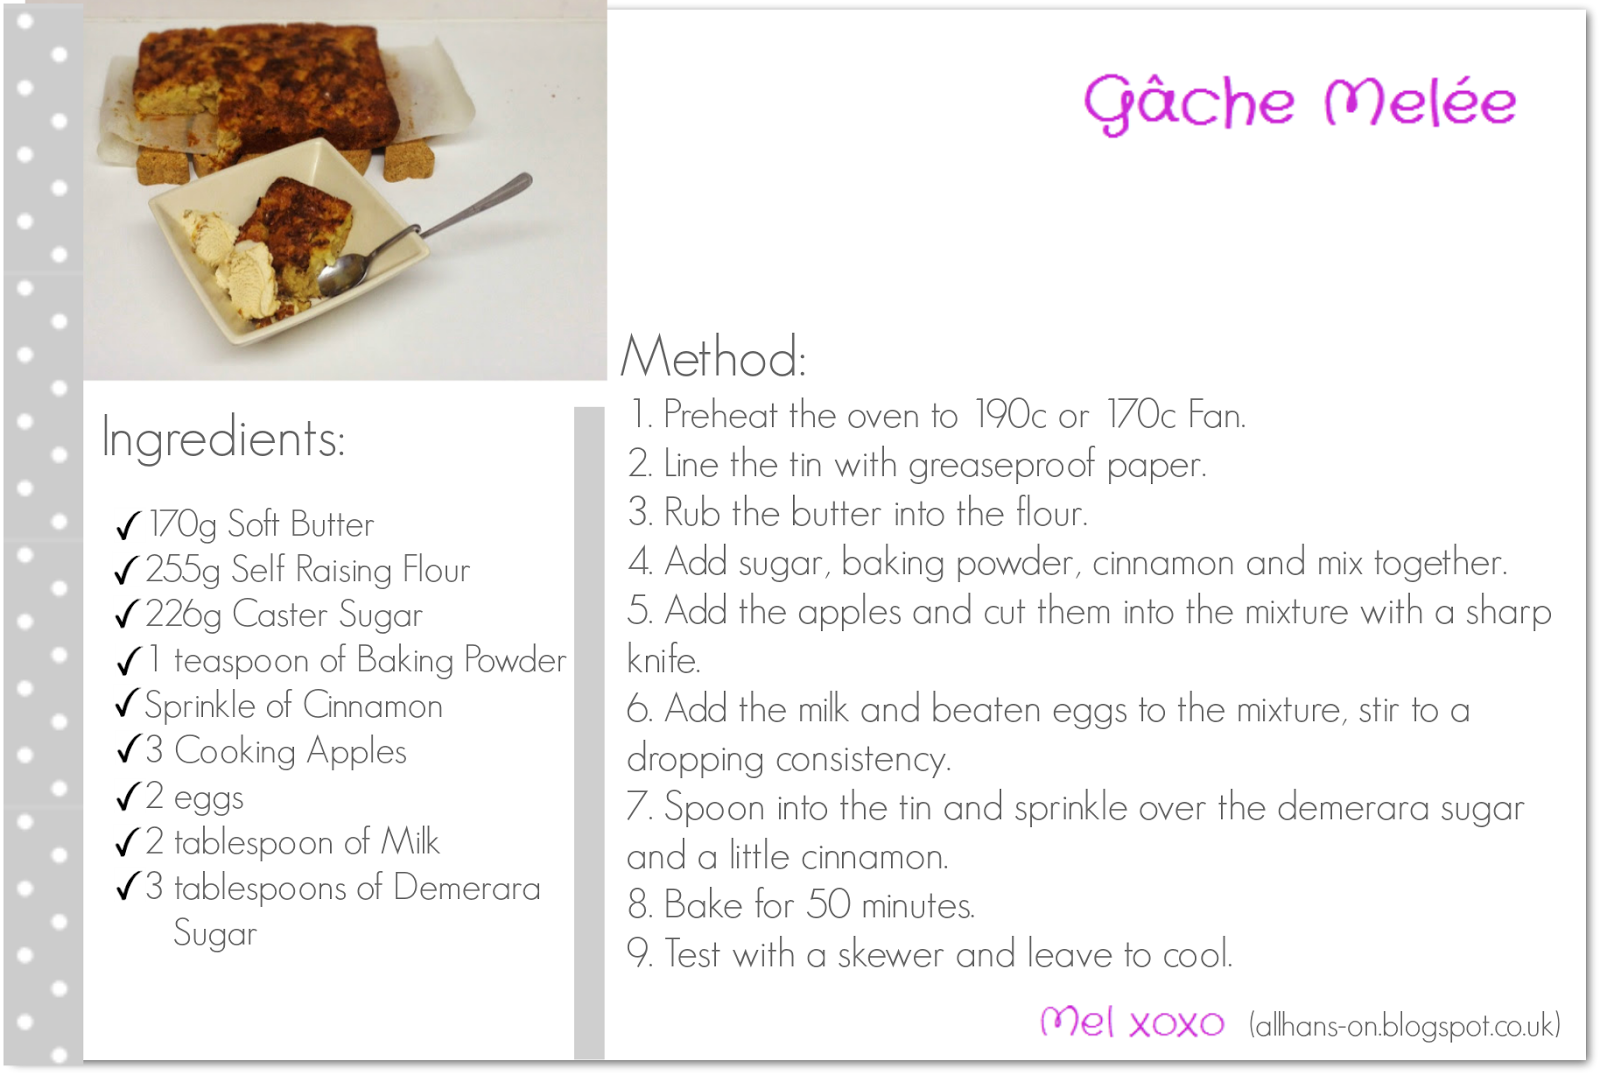 Click here for the printable Gâche Melée Recipe Card